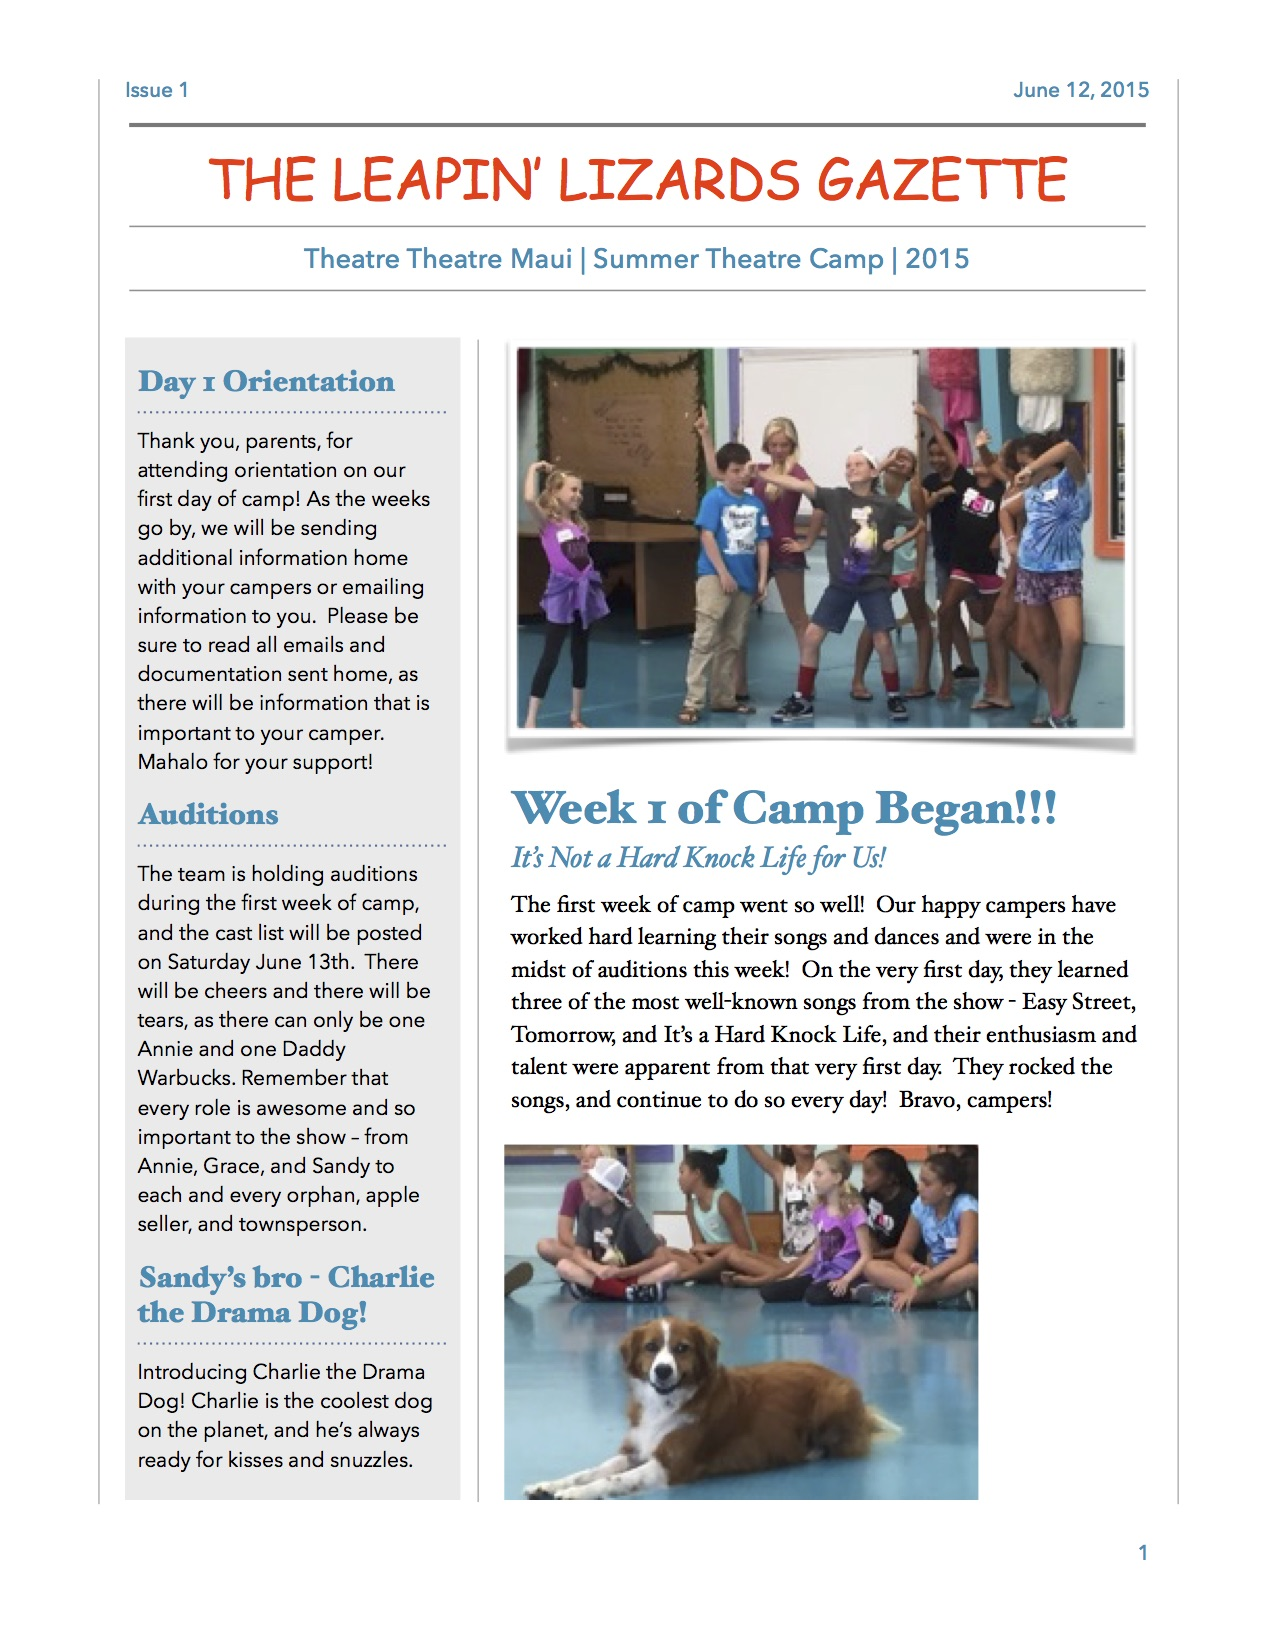 Issue 1 of the Leapin' Lizards Gazette Newsletter!